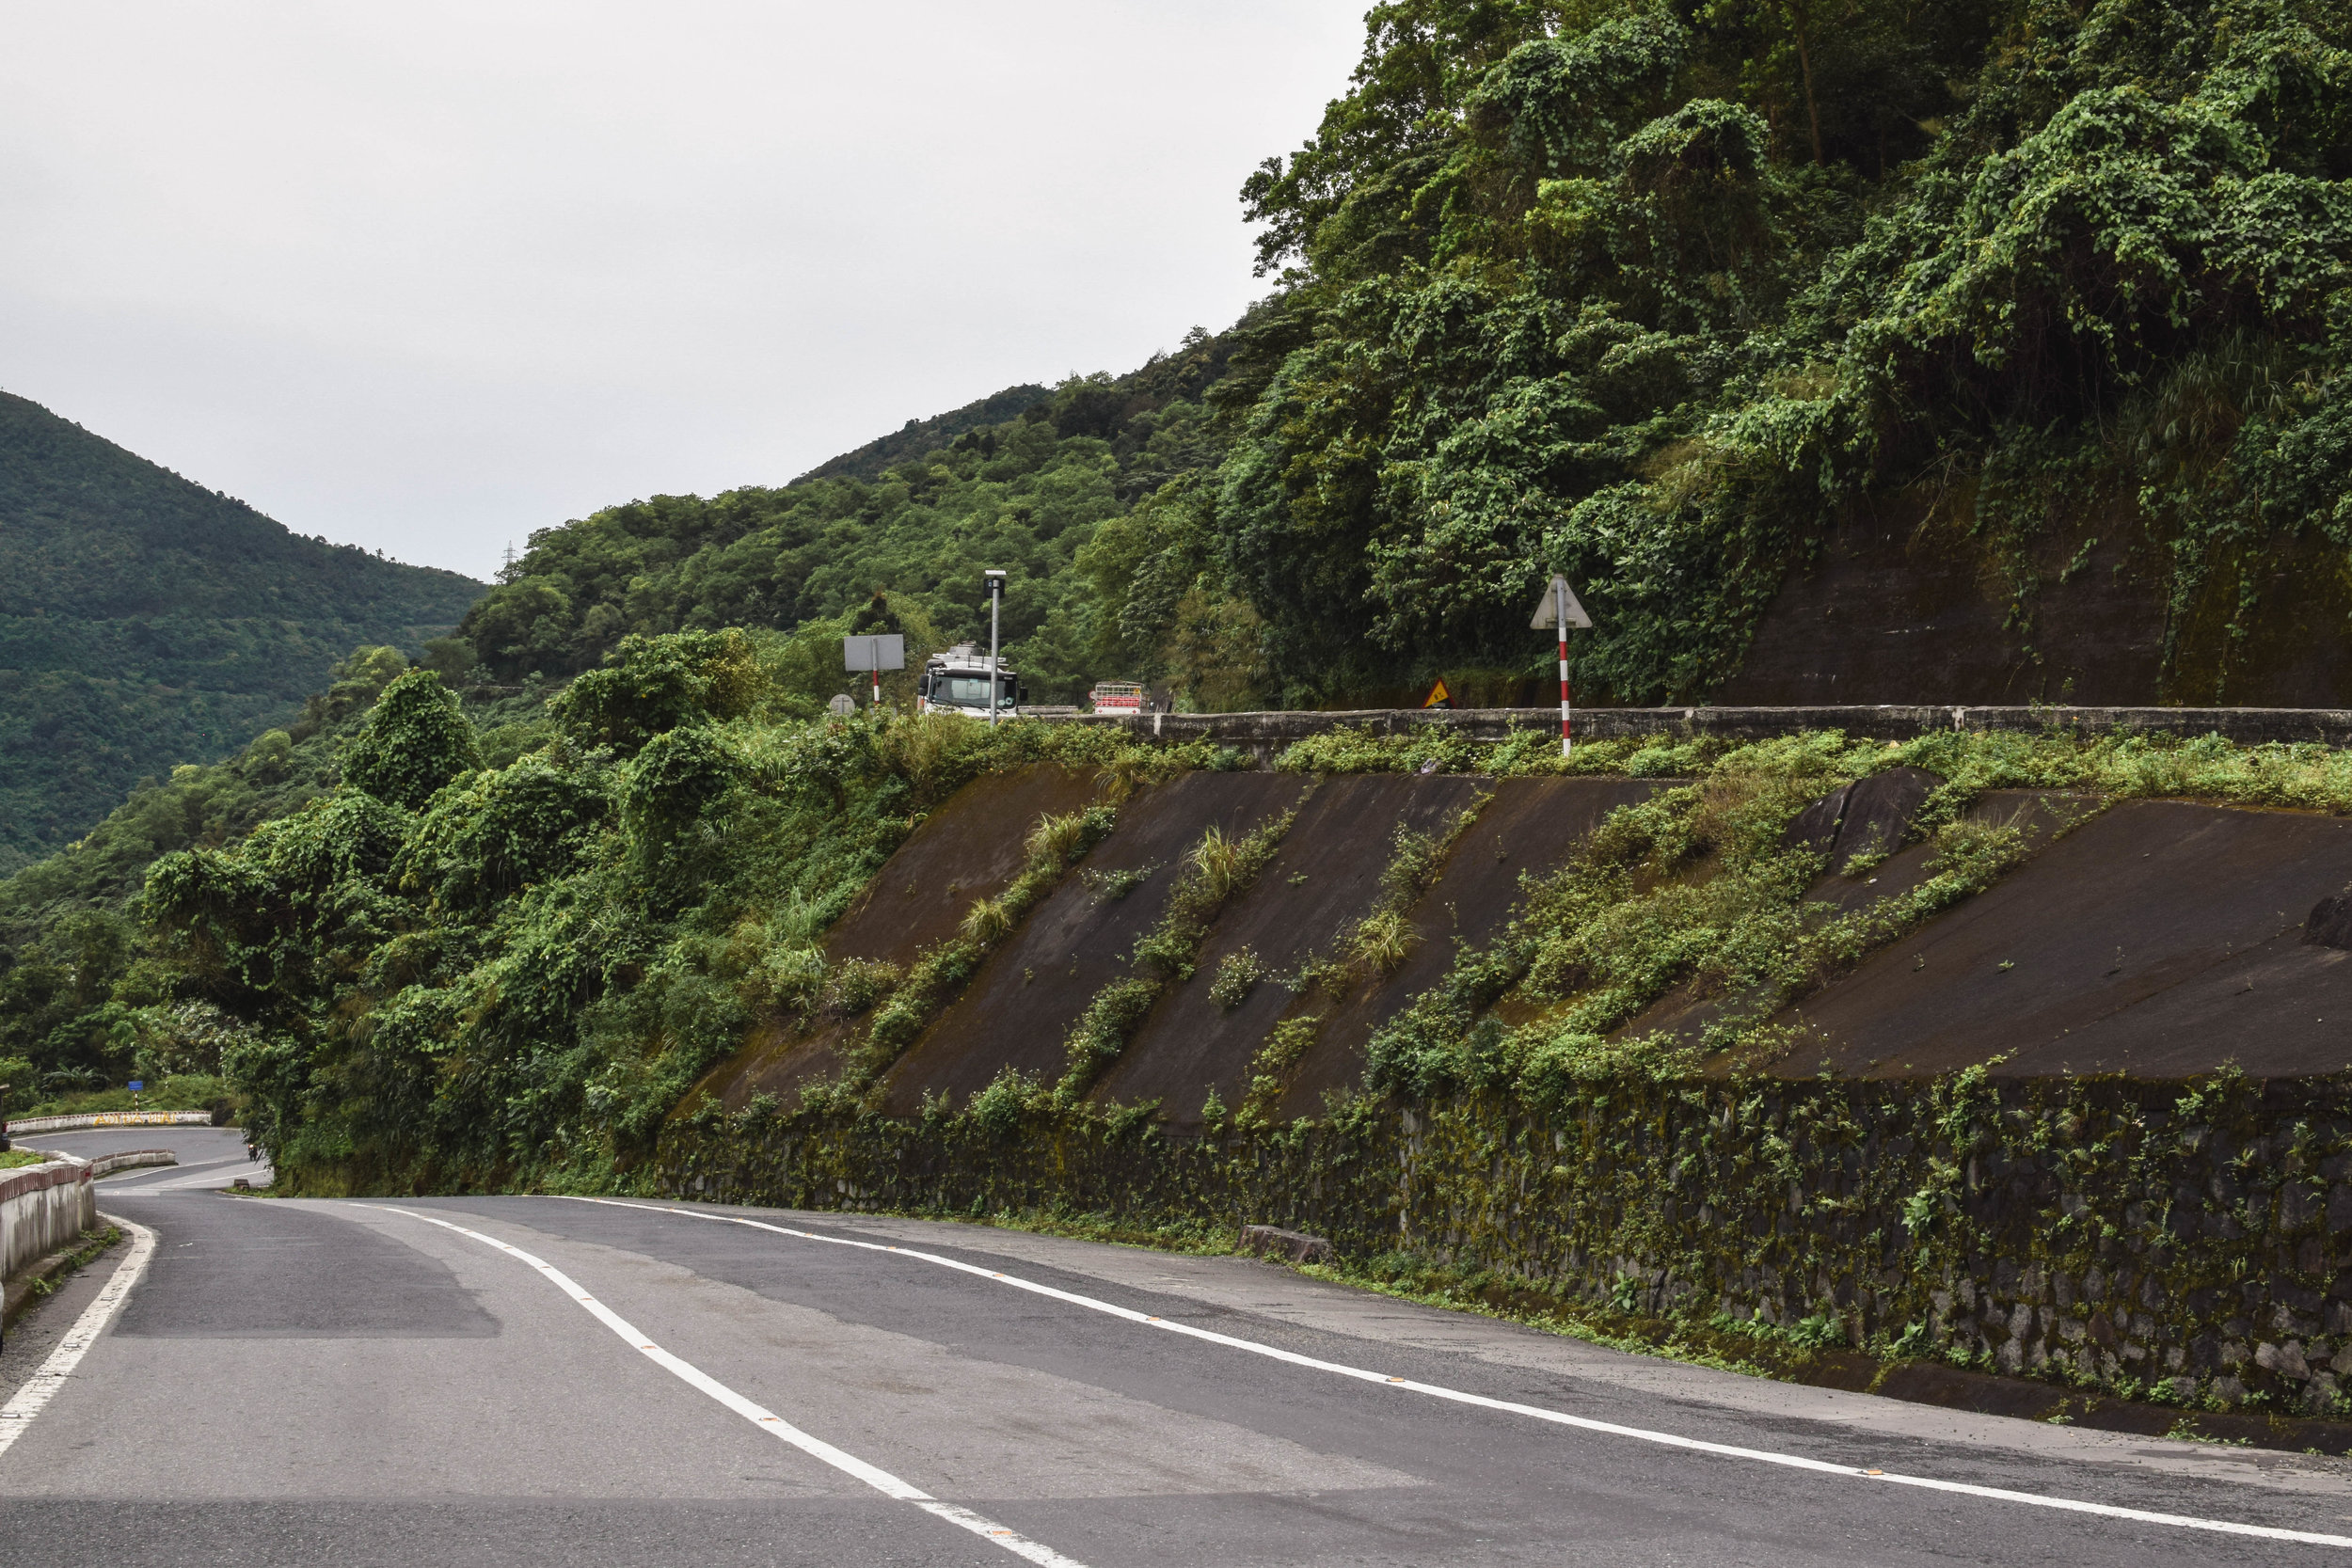 Approaching the Pass on the outskirts of Hue.